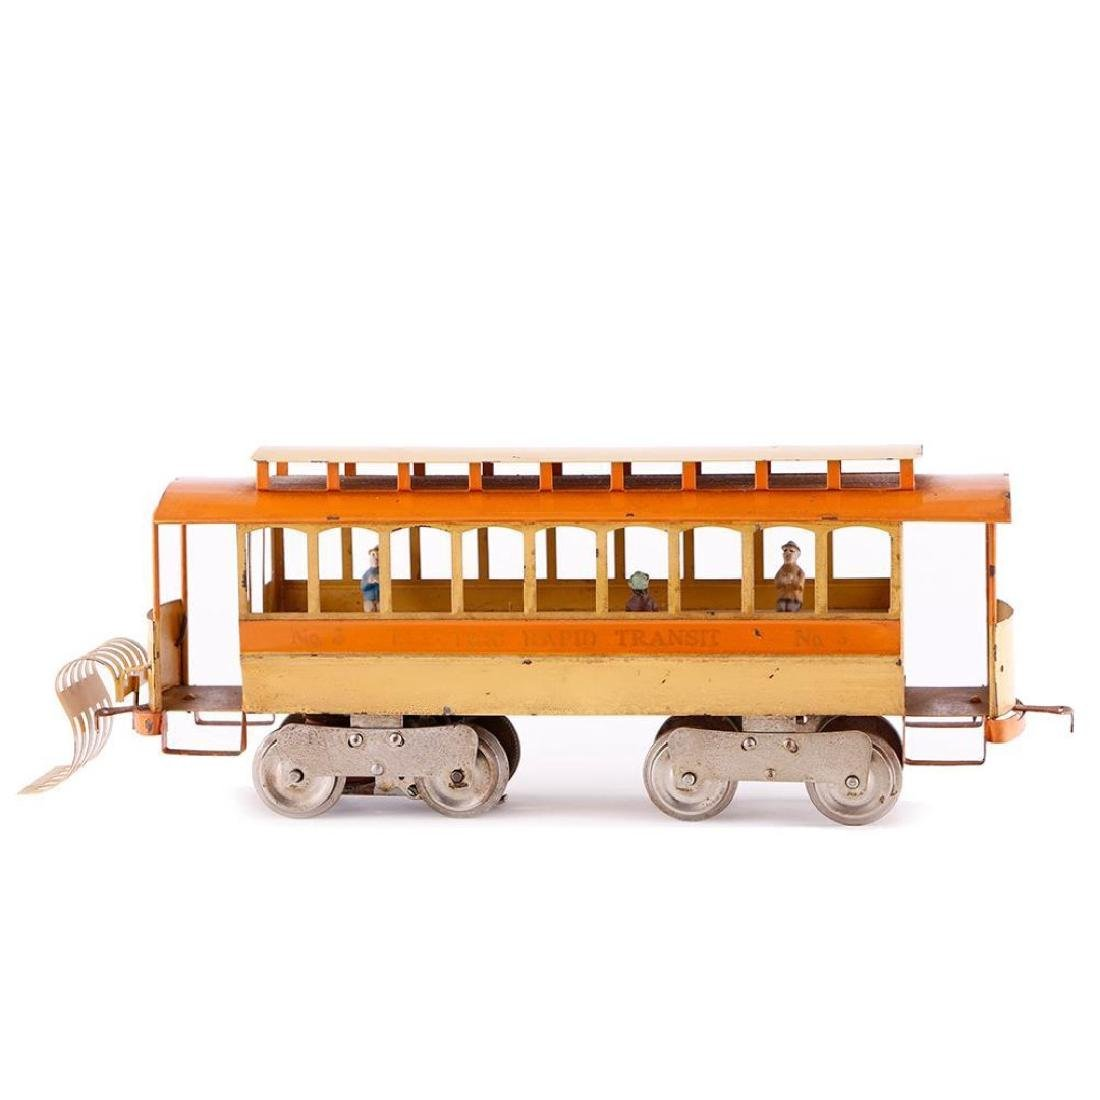 Lionel Standard Gauge #3 Trolley Reproduction - 6